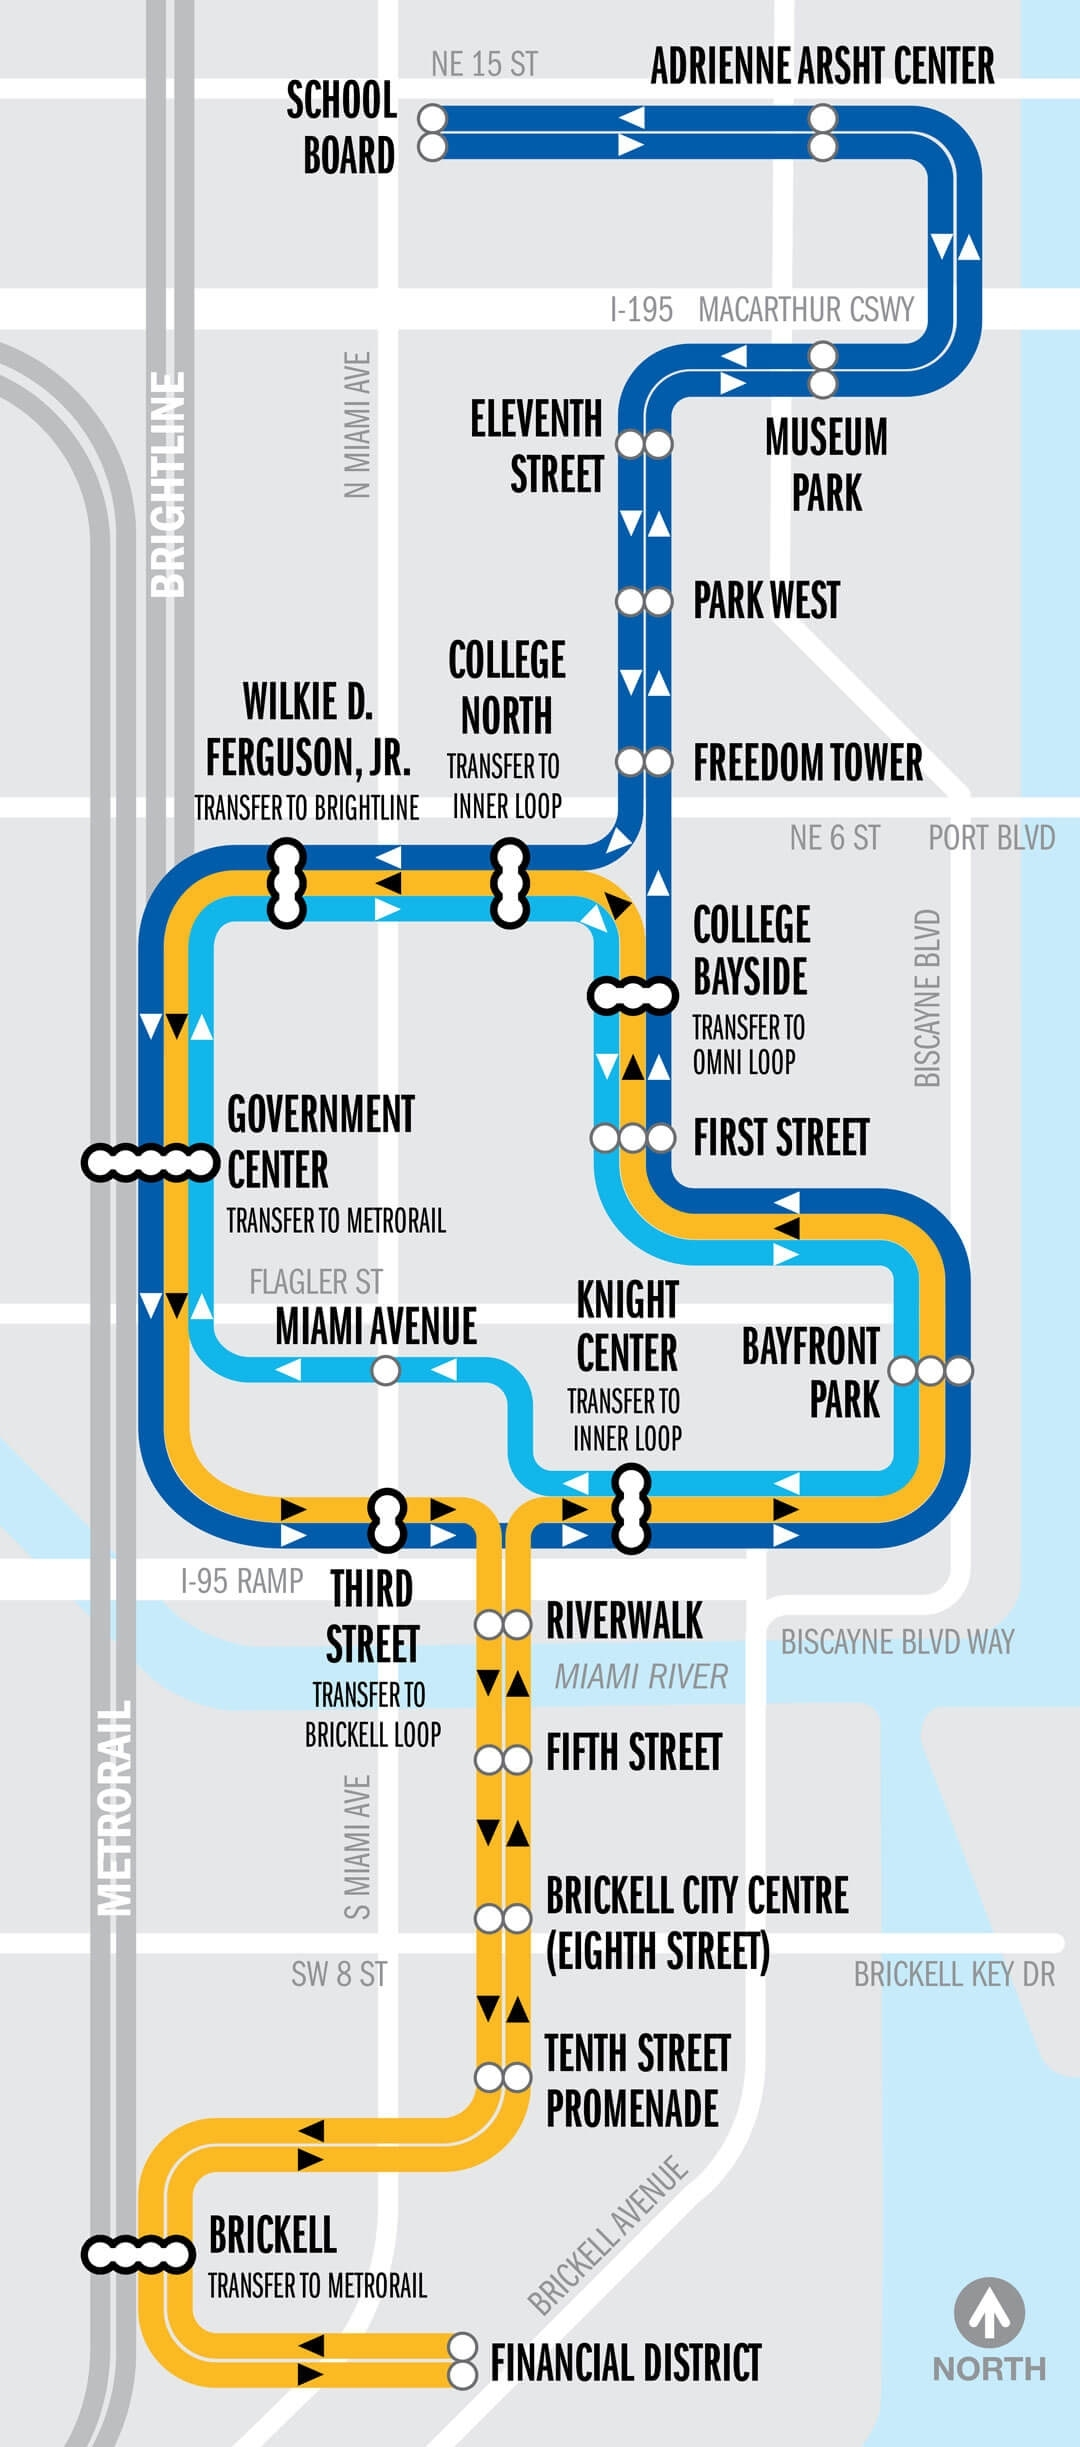 Transportation - Ultra Music Festival intended for Miami Bus Stops Map